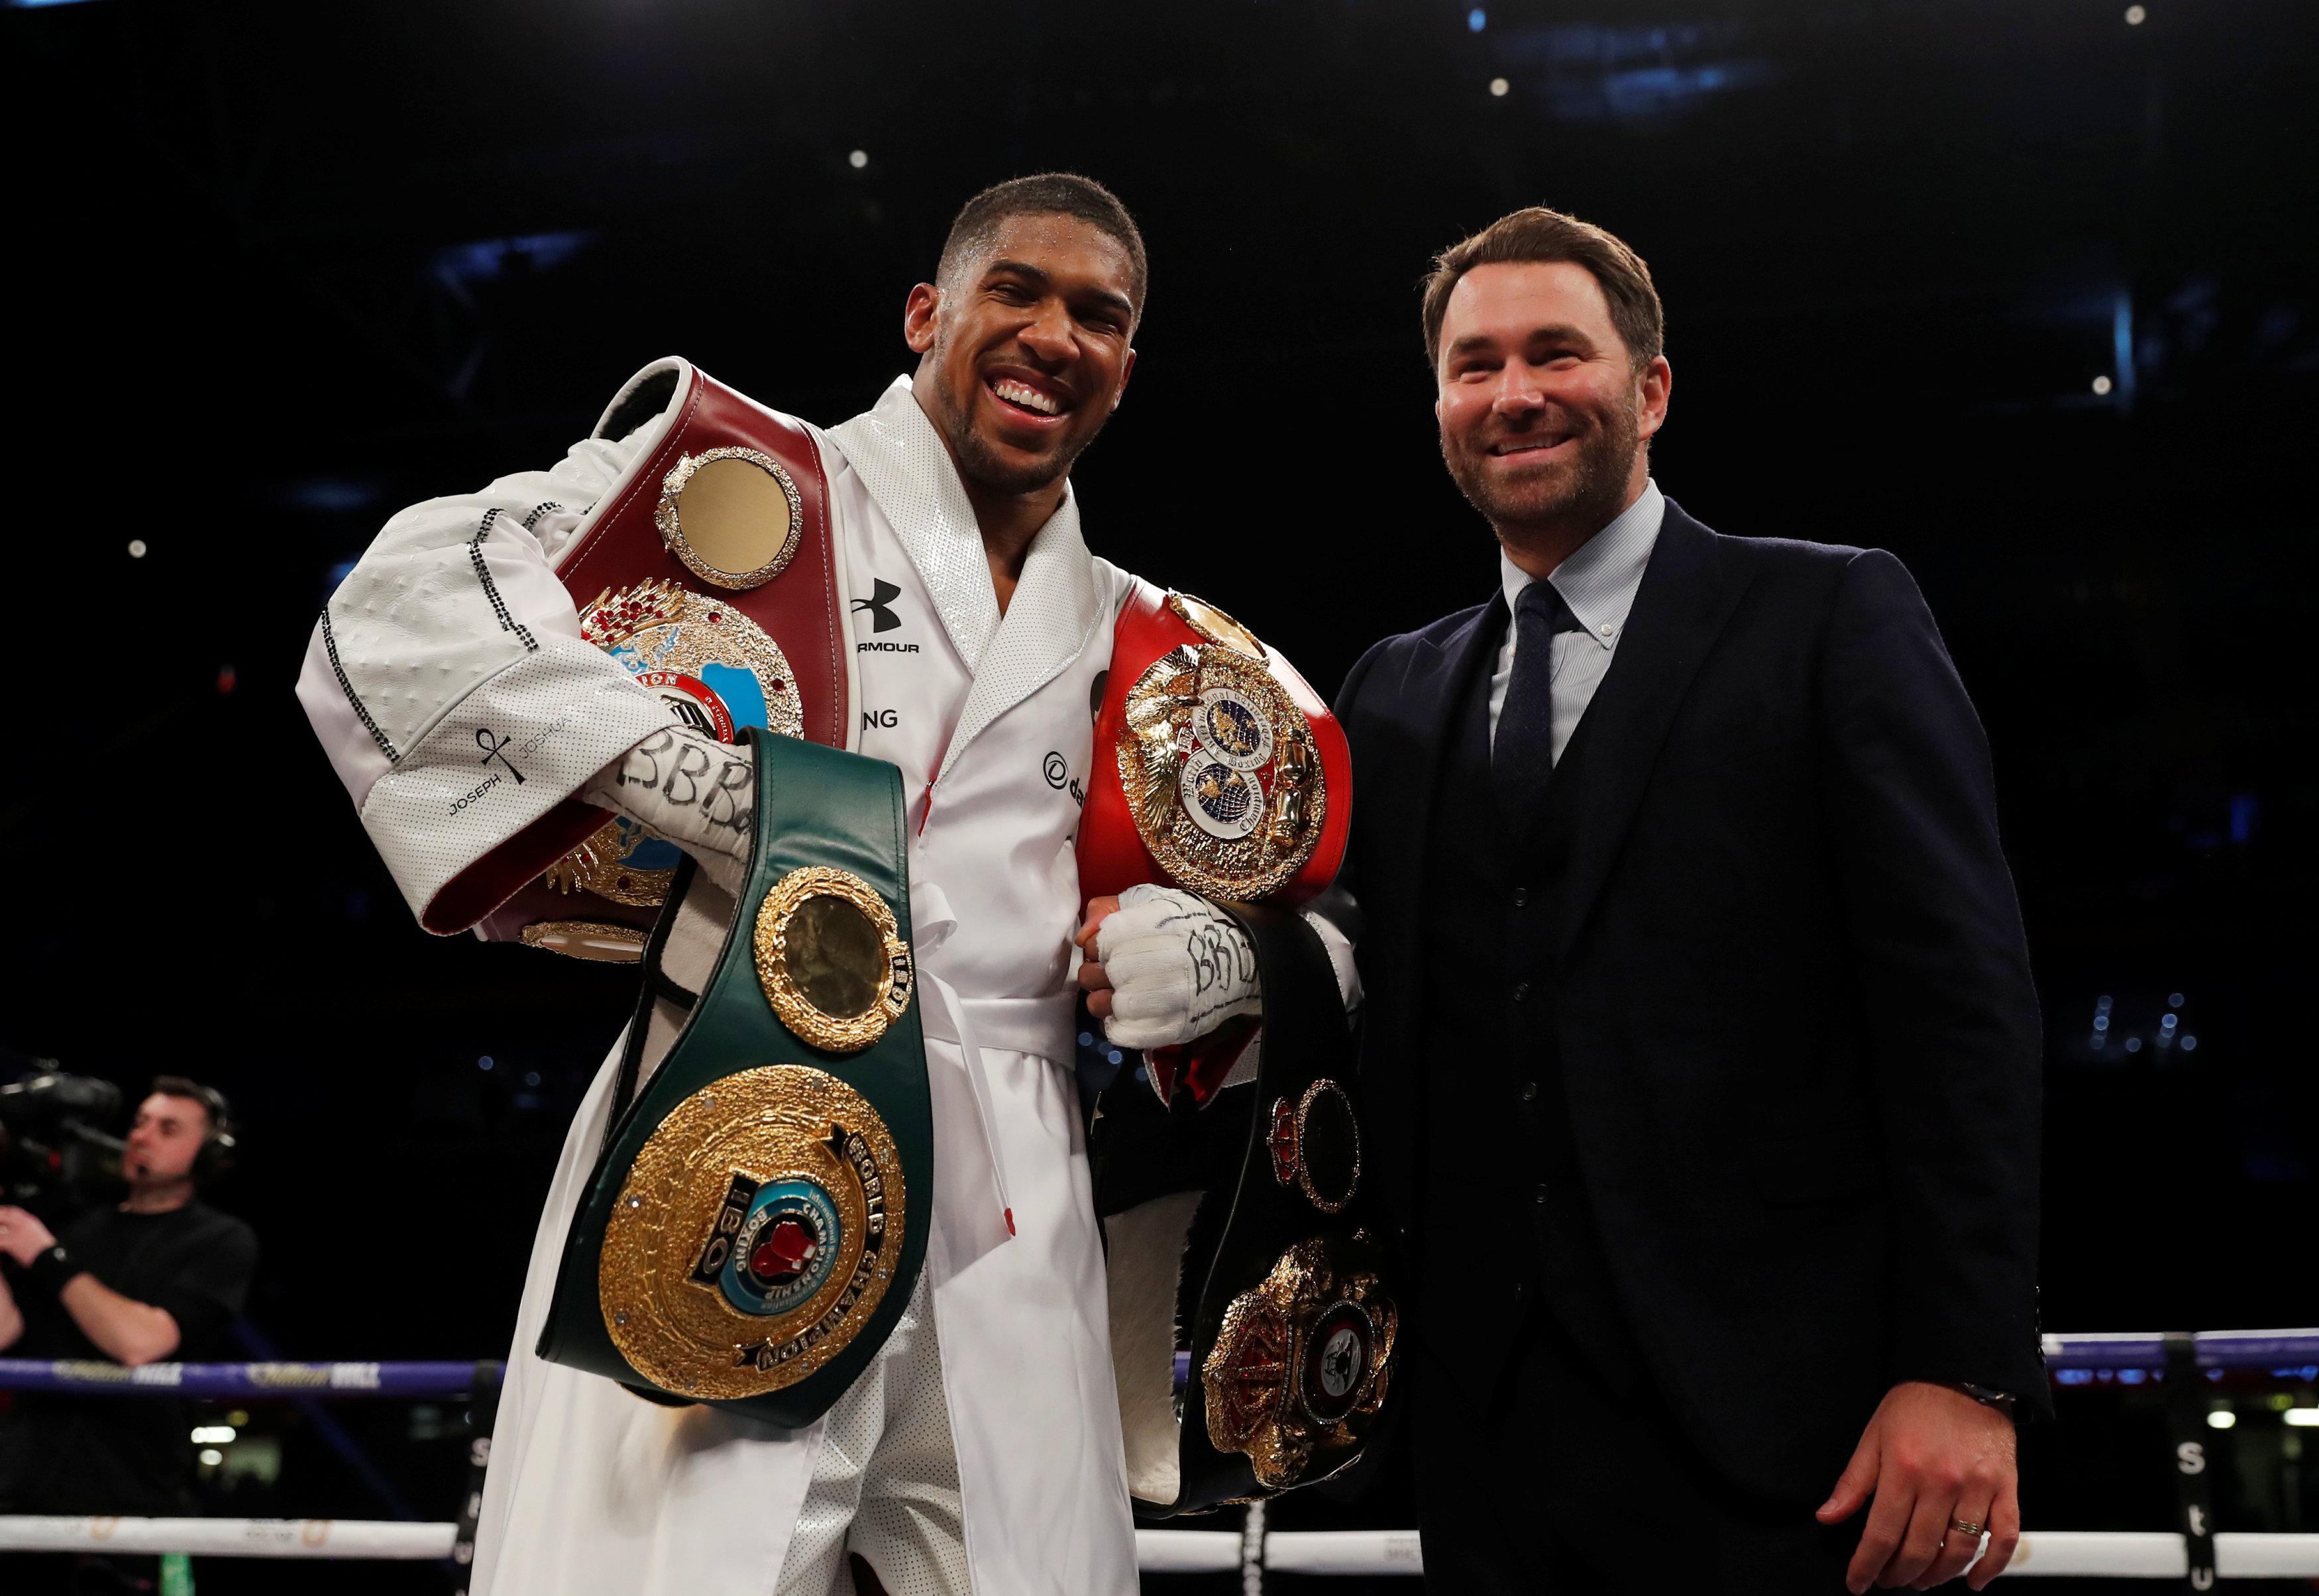 Promoter Eddie Hearn, right, confirmed Anthony Joshua will fight Alexander Povetkin - not Deontay Wilder - next